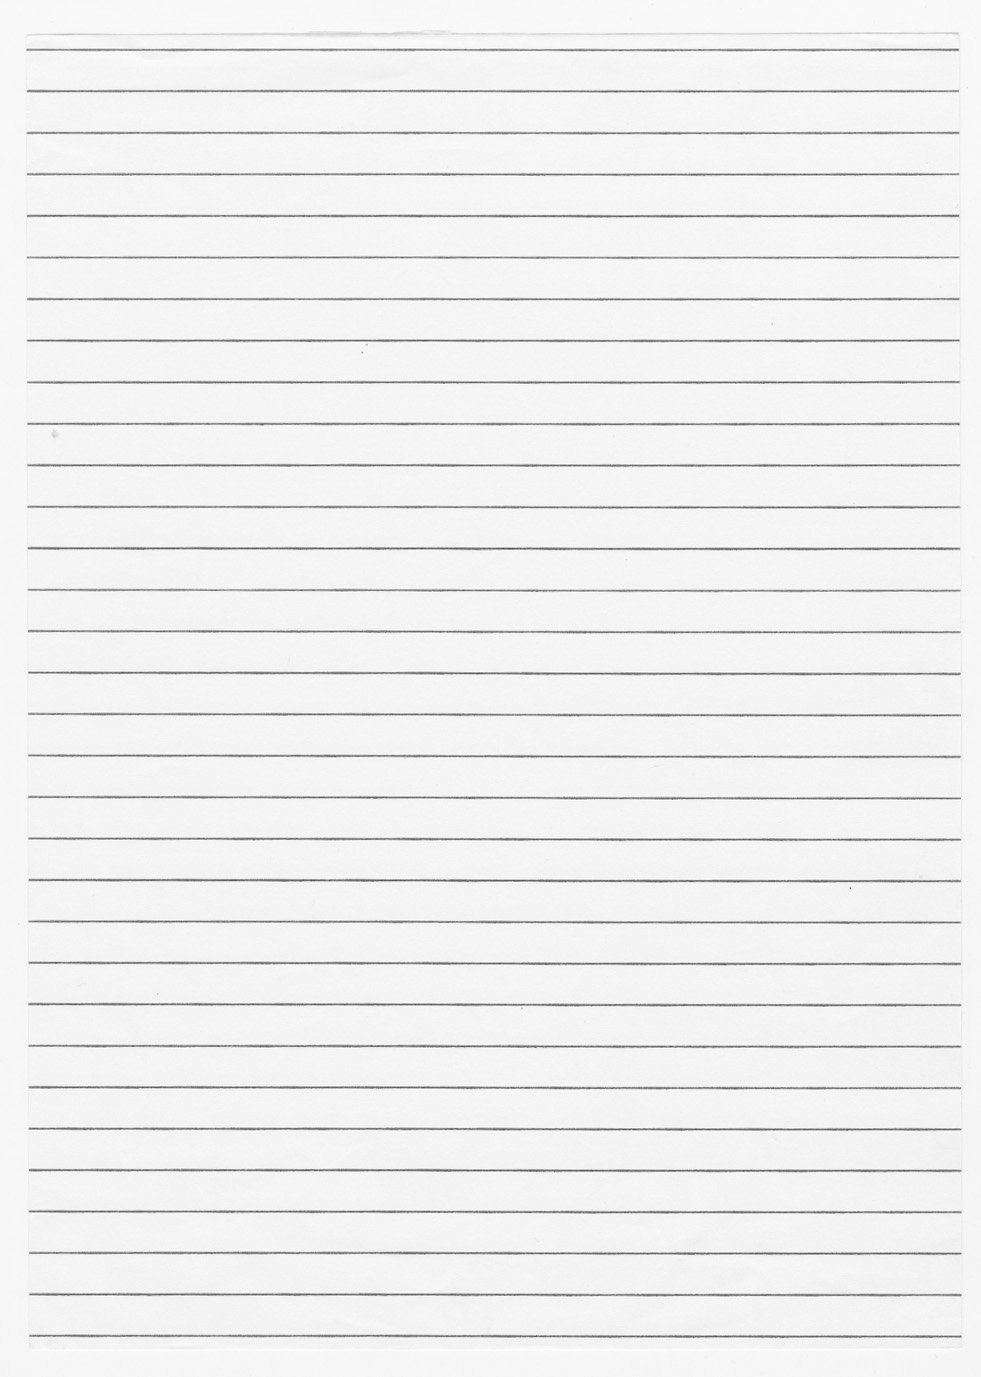 Printable Lined Paper College Ruled Awesome 9 Best Of Printable Ruled Paper Printable Lined